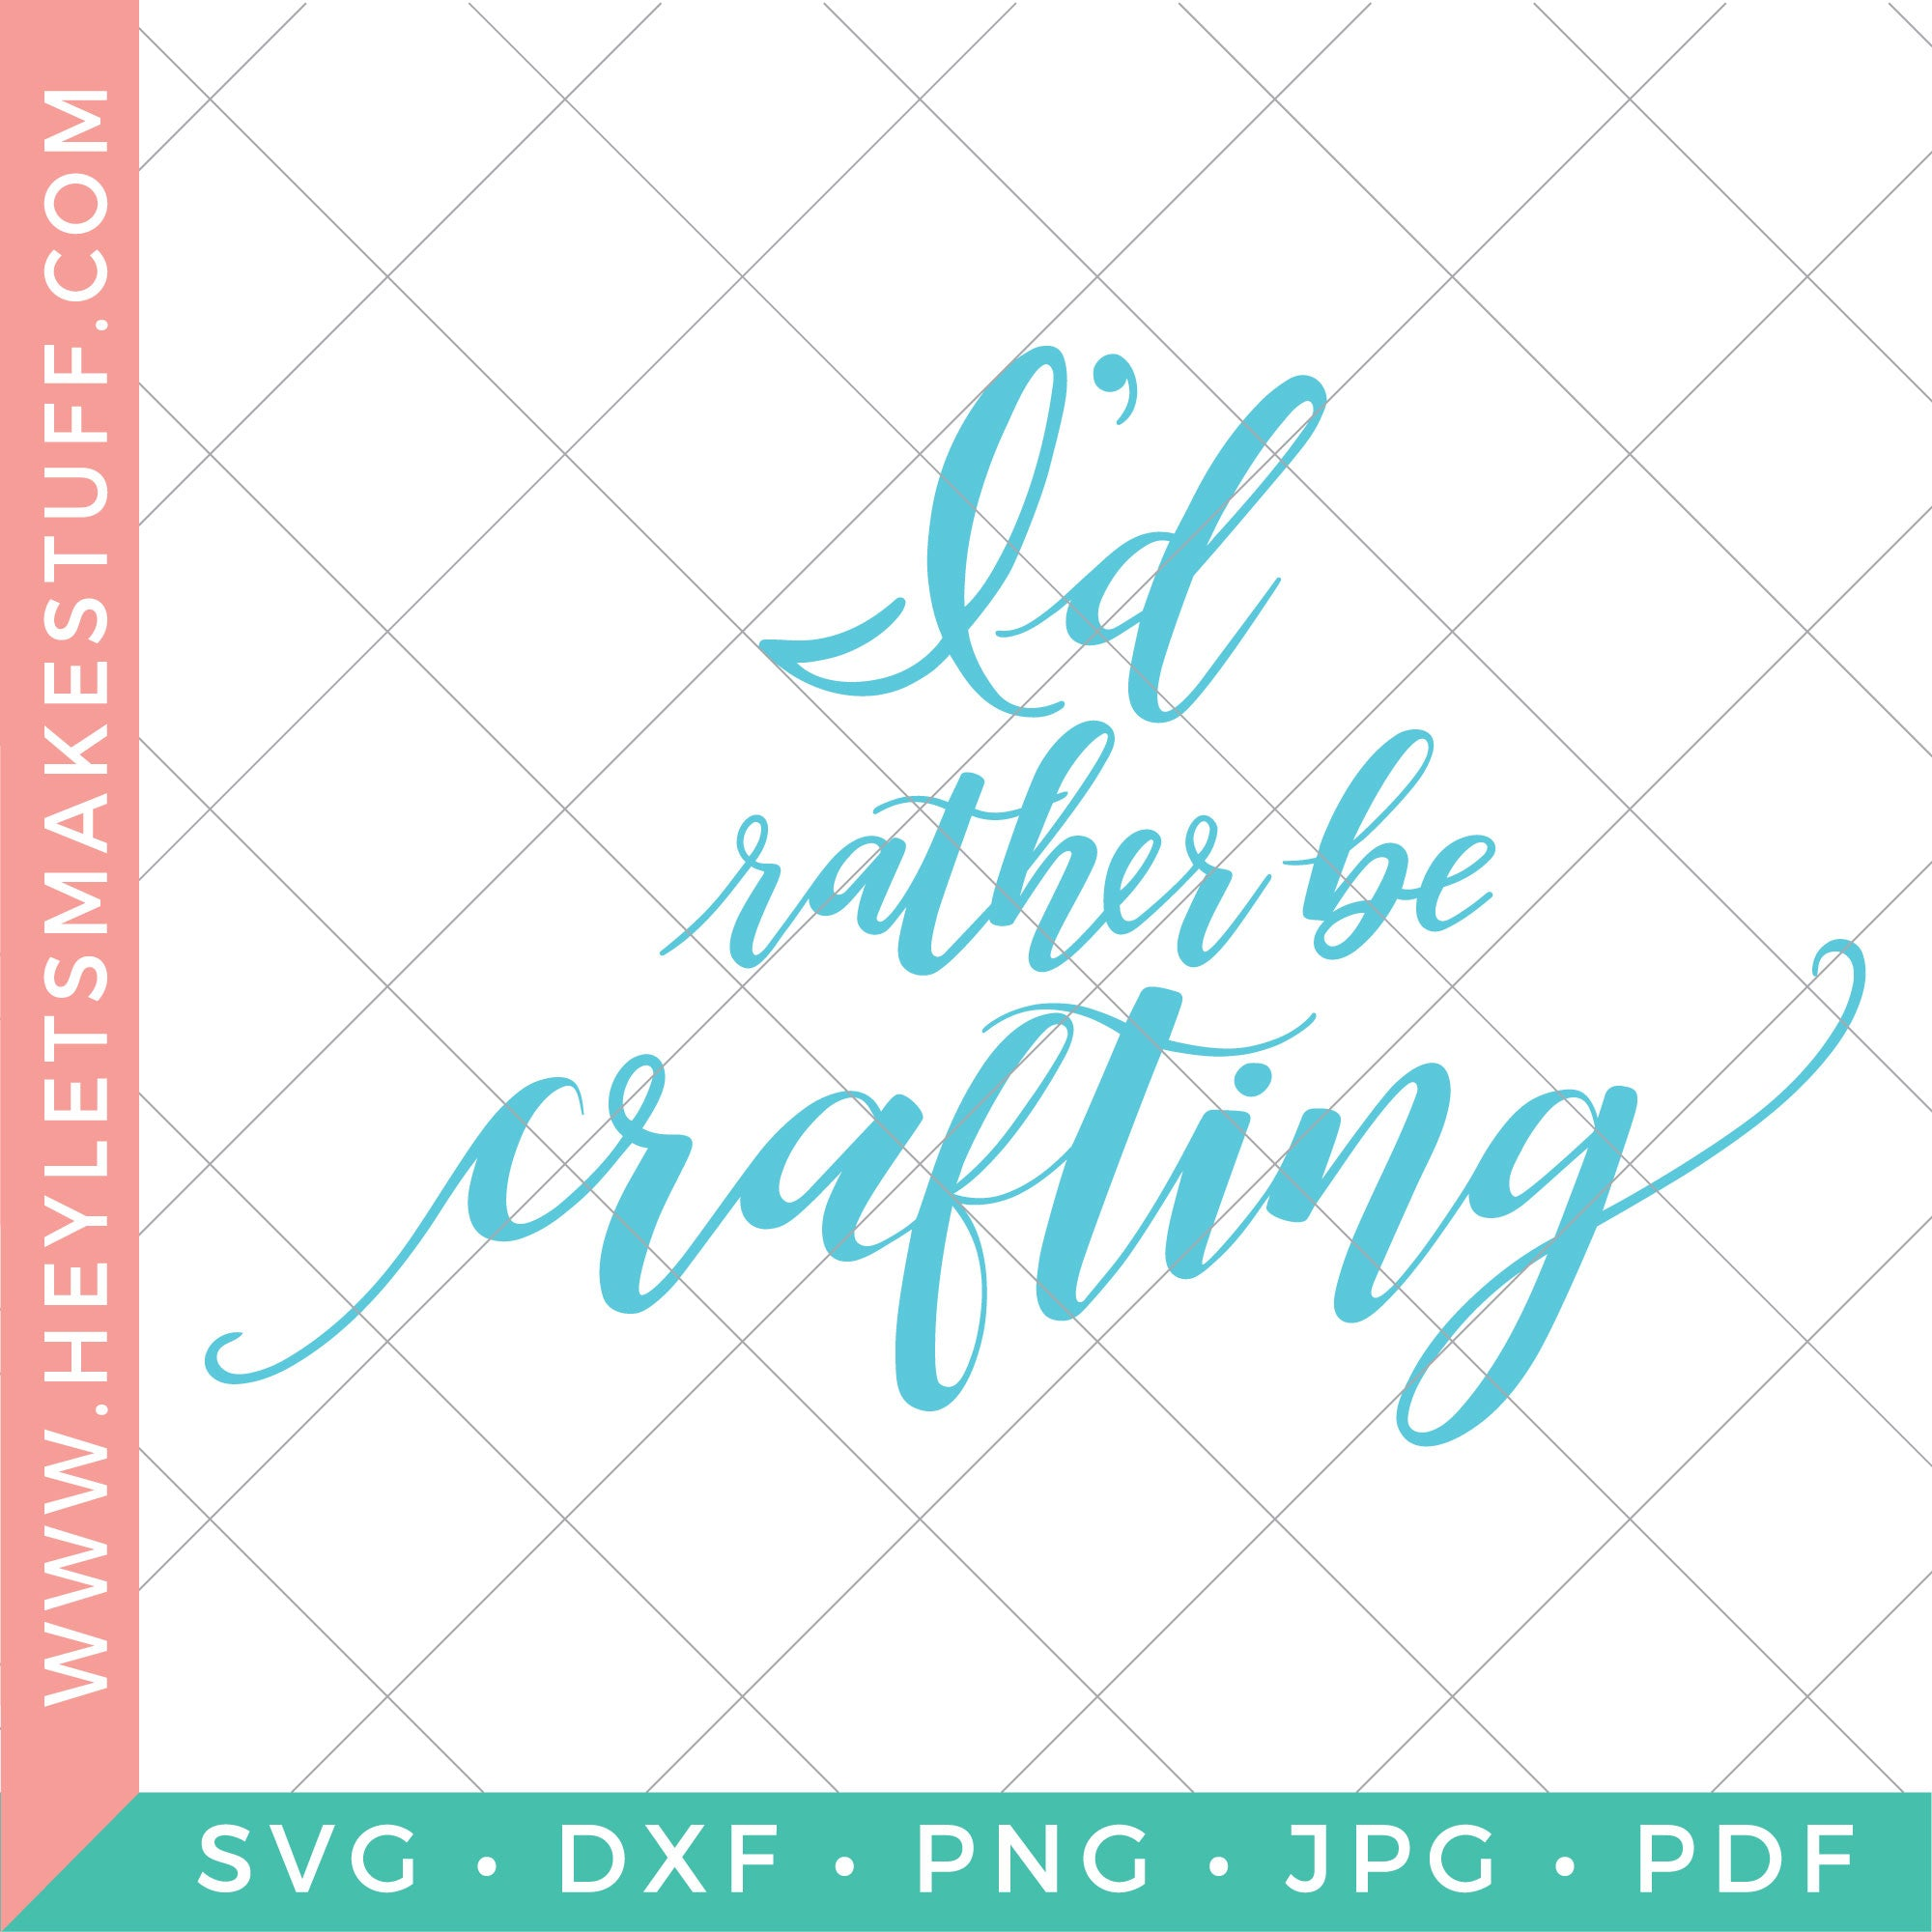 I'd Rather Be Crafting